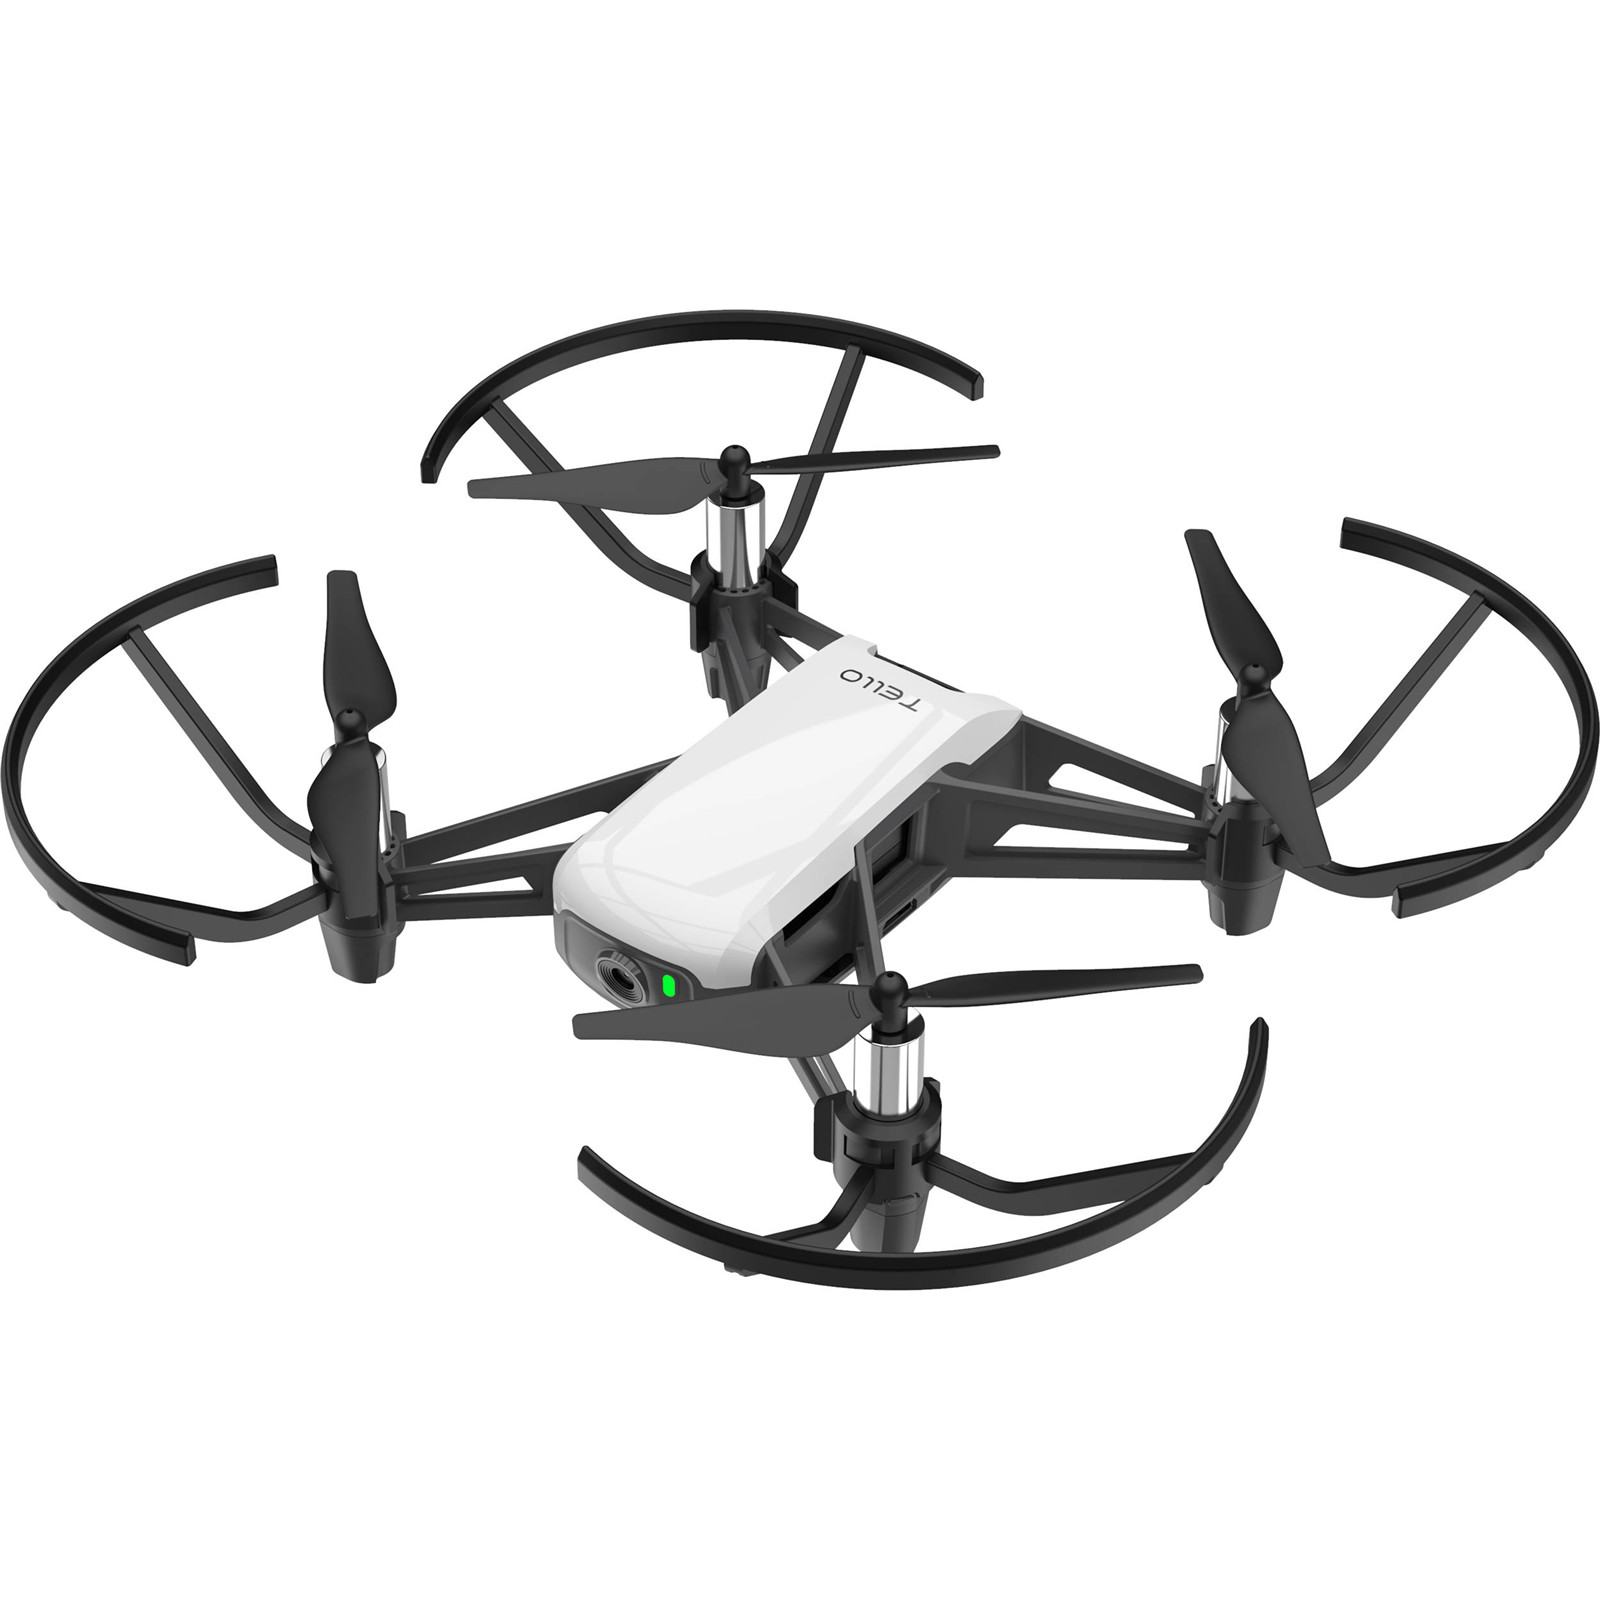 Buy the DJI Tello Smart Education Drone With 720HD Video